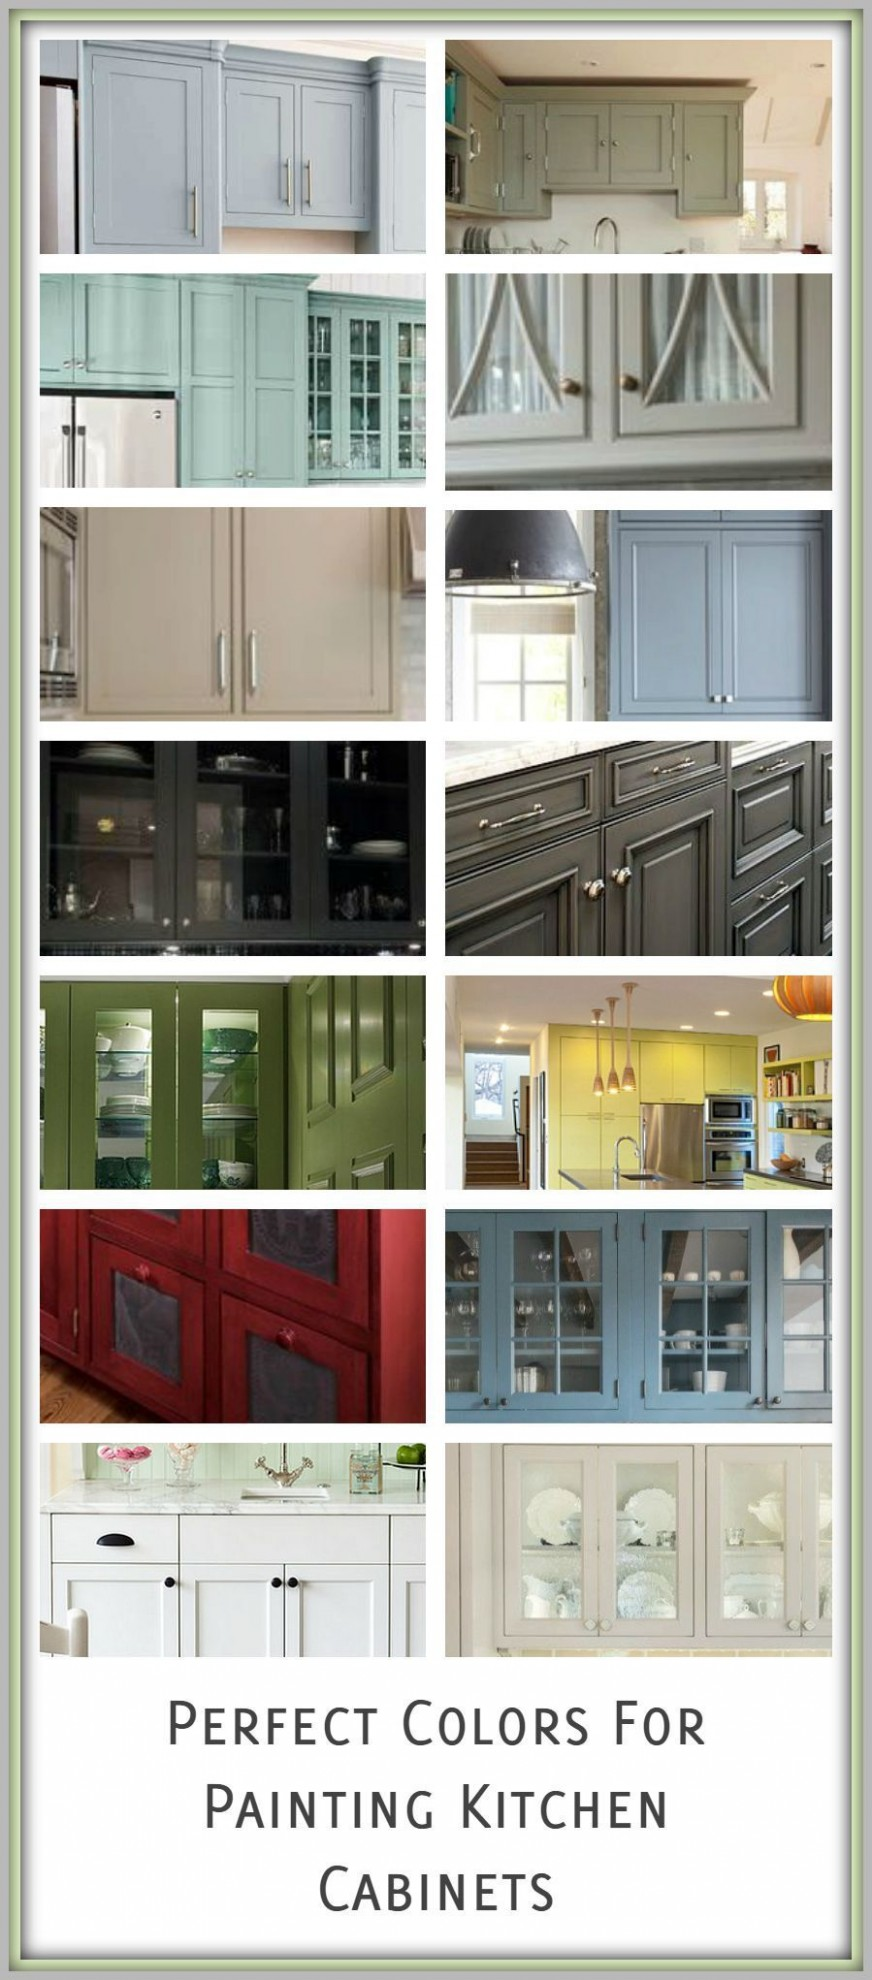 How to Pick Paint Colors for Kitchen Cabinets - Painted Furniture  - Choosing Kitchen Cabinet Color